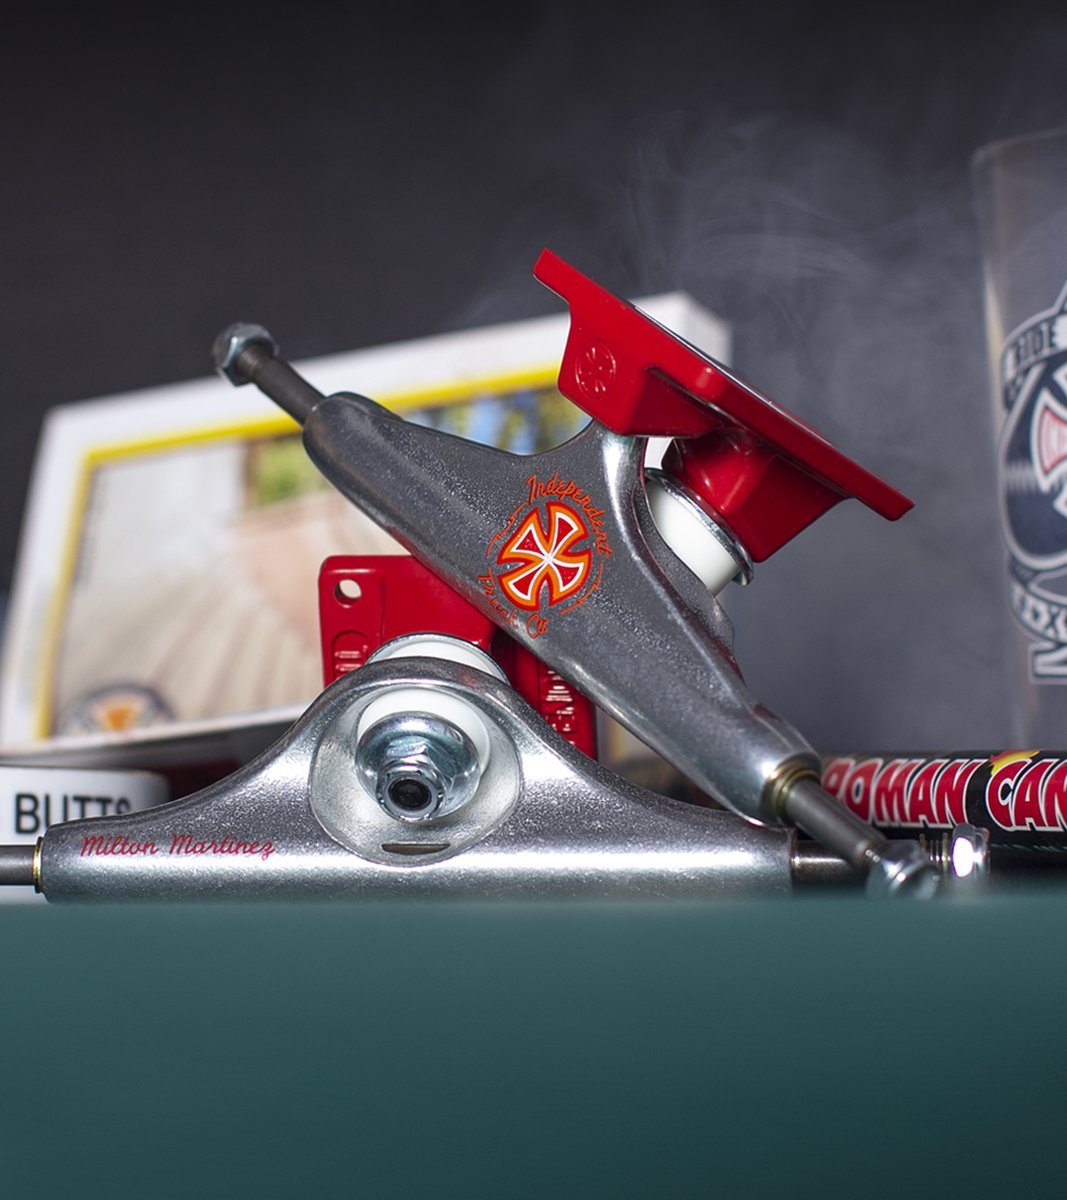 Independent Trucks is proud to release the latest colorway in the Milton Martinez signature truck line. Milton's Pro truck is available in 139, 144, 149, & 159. Available at your local skateshop! 🔥  https://t.co/BZVeWiEkuv https://t.co/xHPuPScjZk